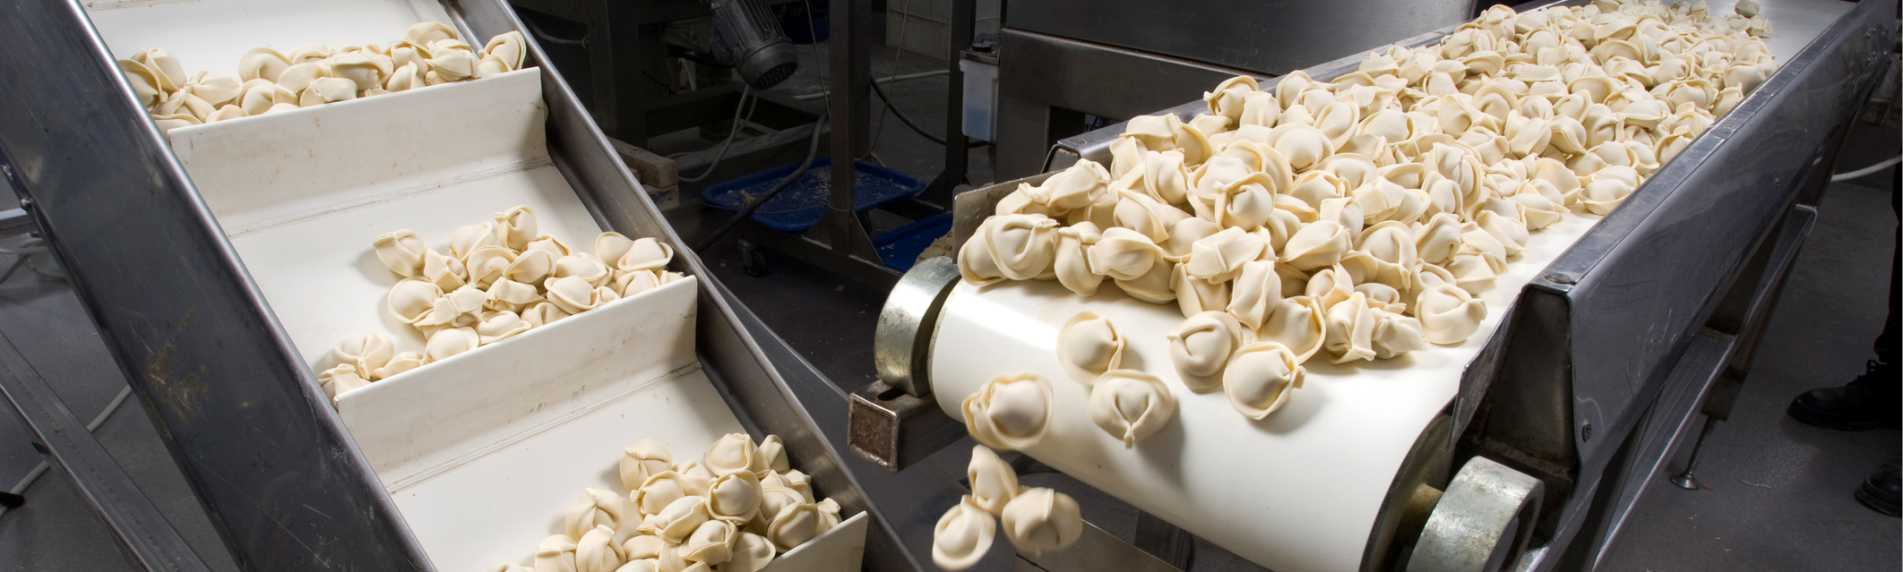 Humidifying a Food Processing Plant for Pasta